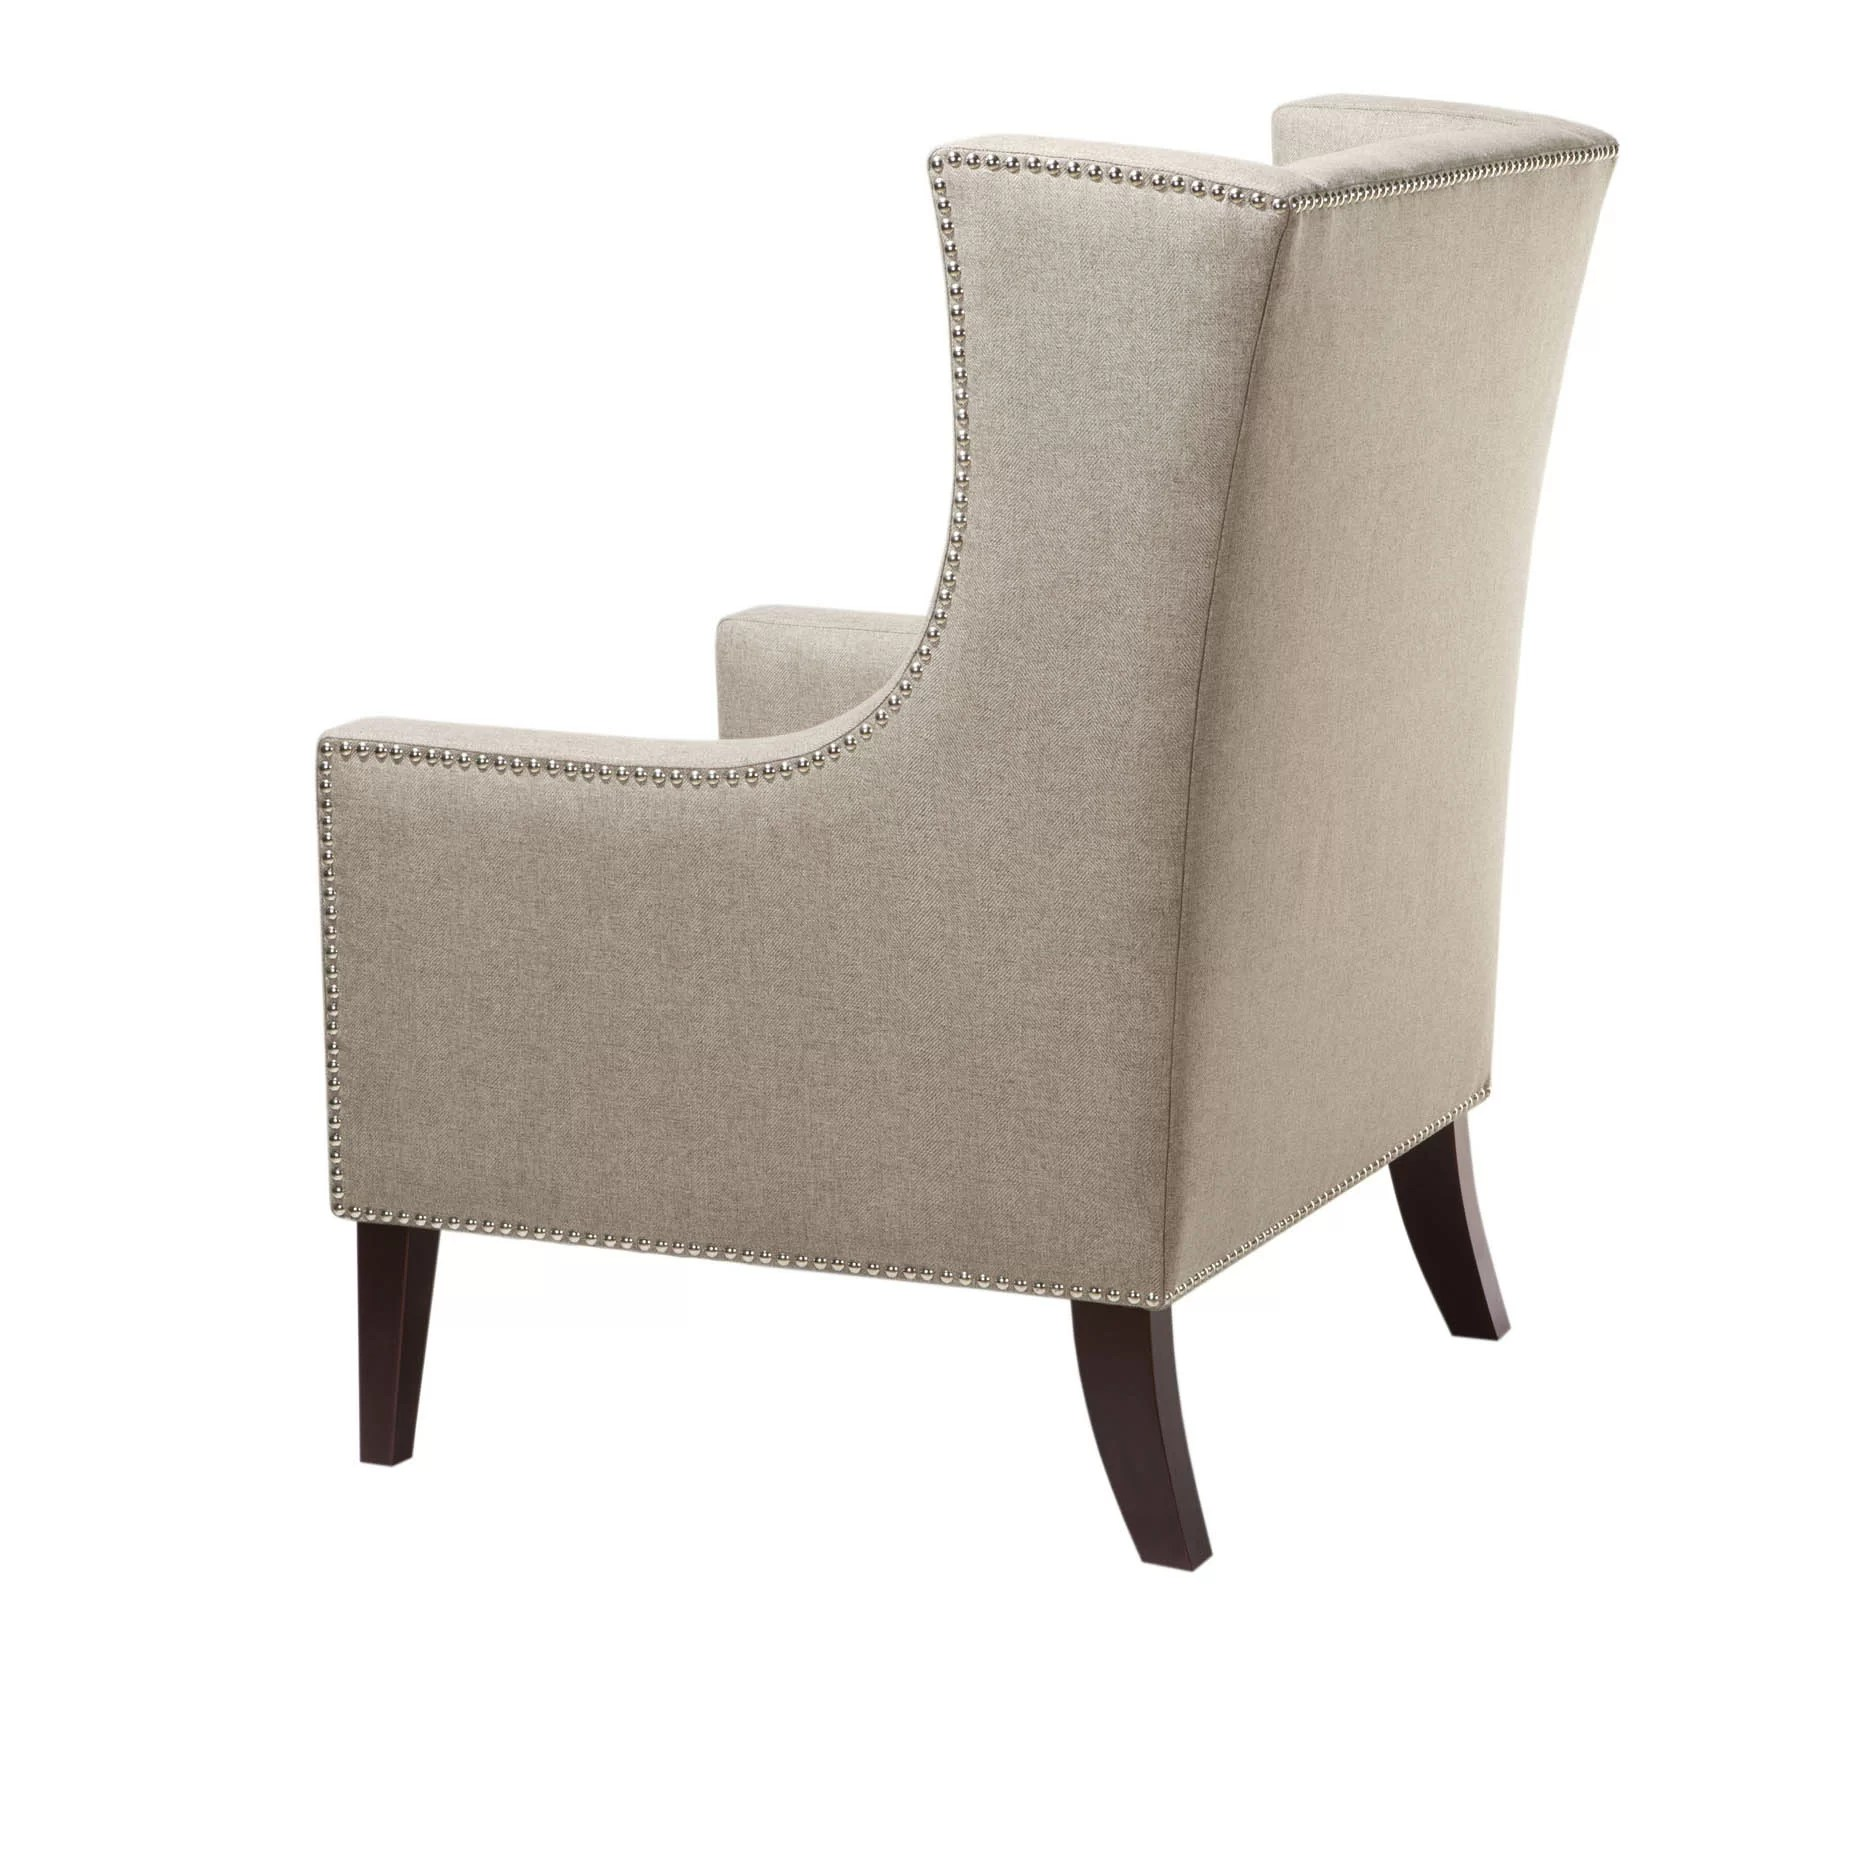 Barton Chair Madison Park Barton Wing Arm Chair And Reviews Wayfair